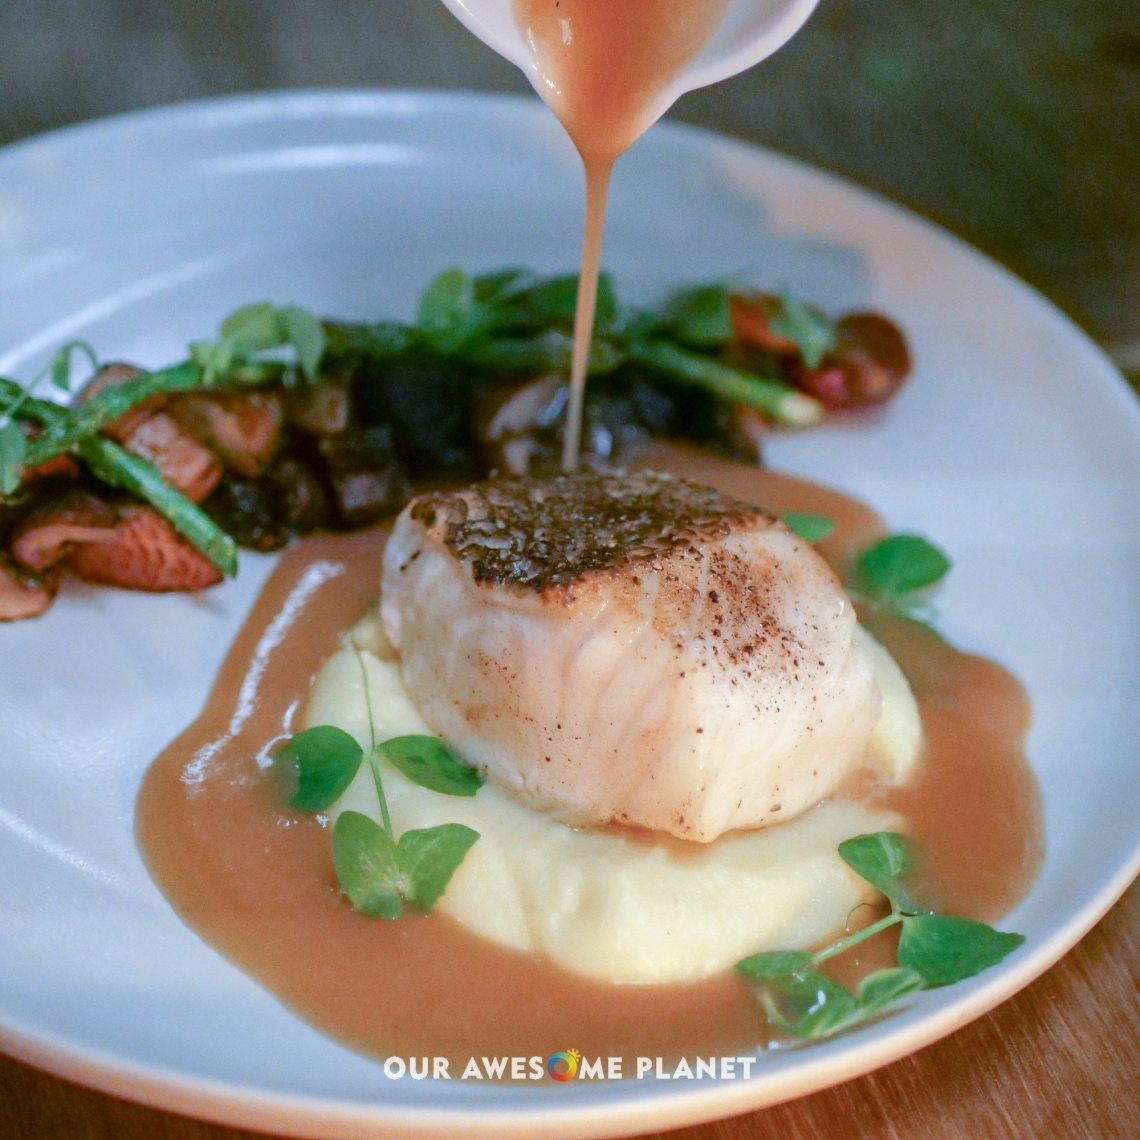 Seared Chilean Sea Bass (₱1,800). Shiitake mushrooms, garlic confit, Madeira-mushroom broth